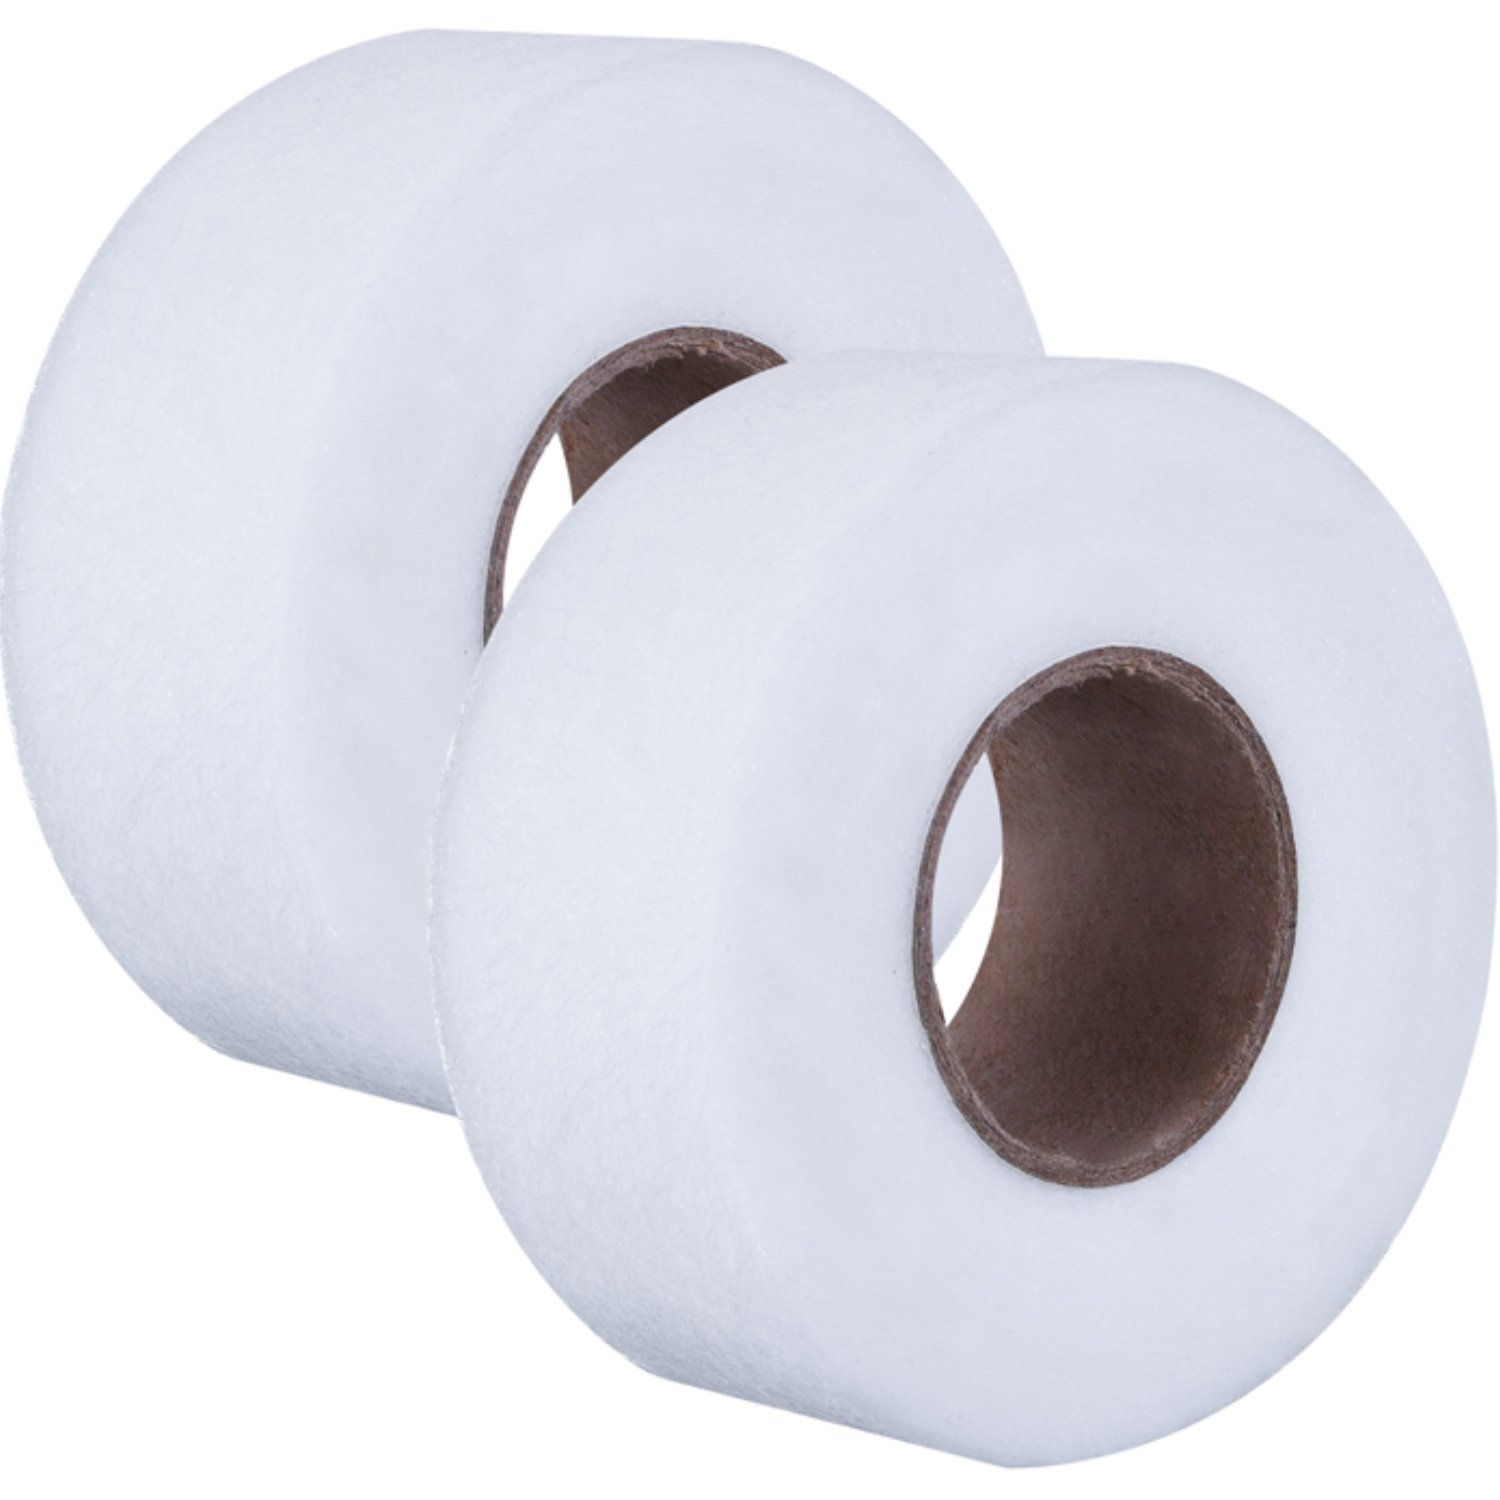 Outus Fabric Fusing Tape Adhesive Hem Tape Iron-on Tape Each 27 Yards, 2 Pack (1 Inch) 4337014289